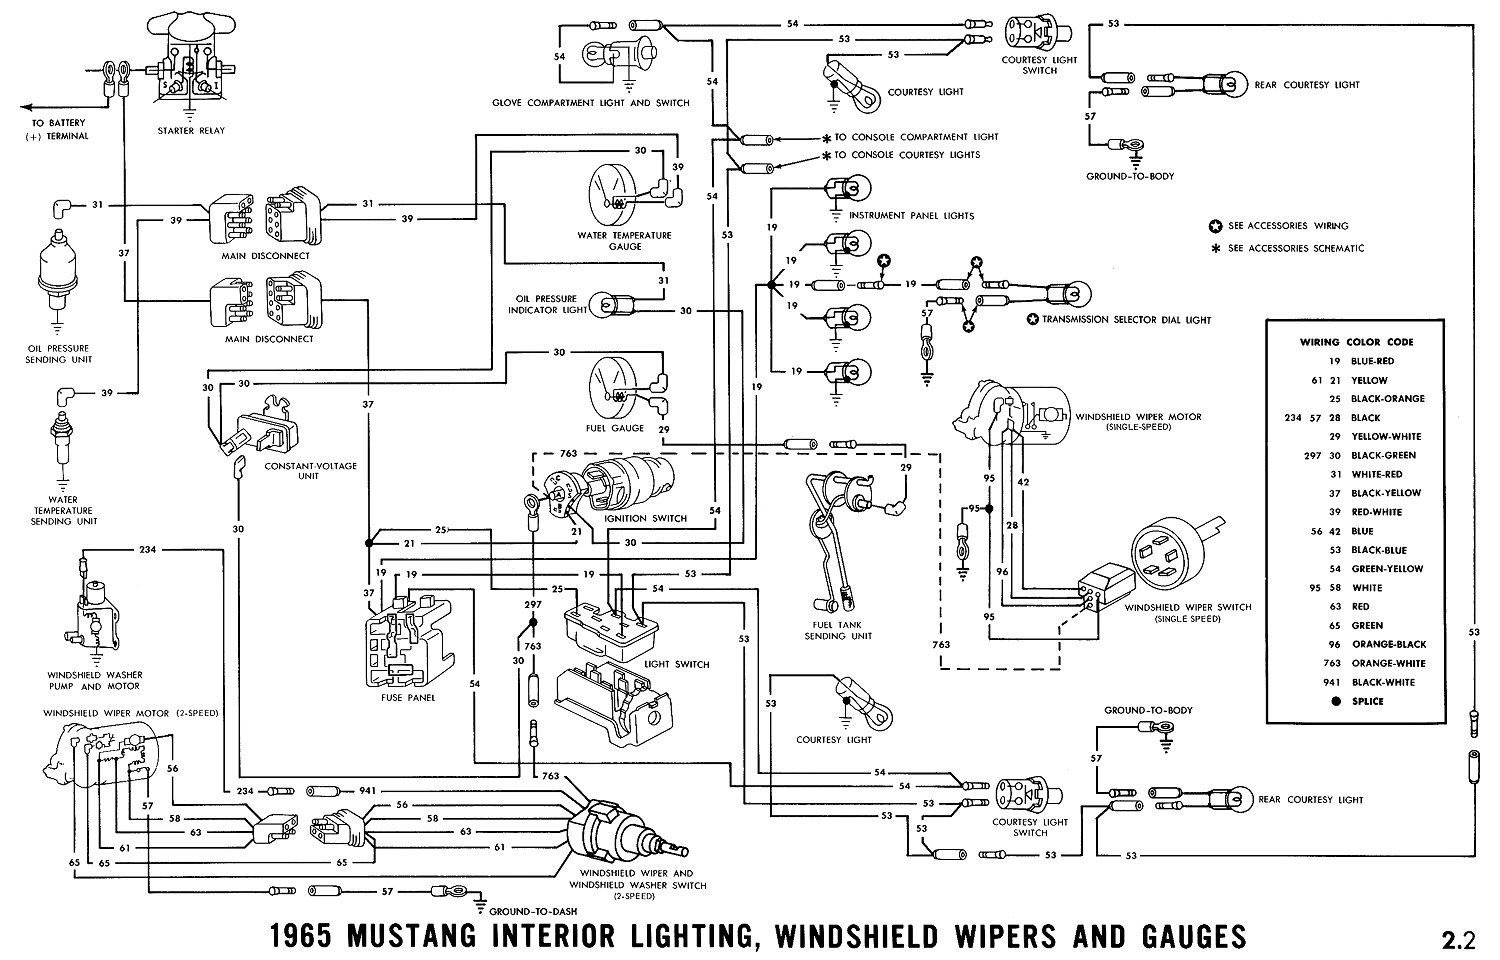 65 mustang fuse box diagram wiring diagram third level1965 mustang fuse diagram box wiring diagram 1968 mustang fuse box diagram 1965 mustang wiring diagrams